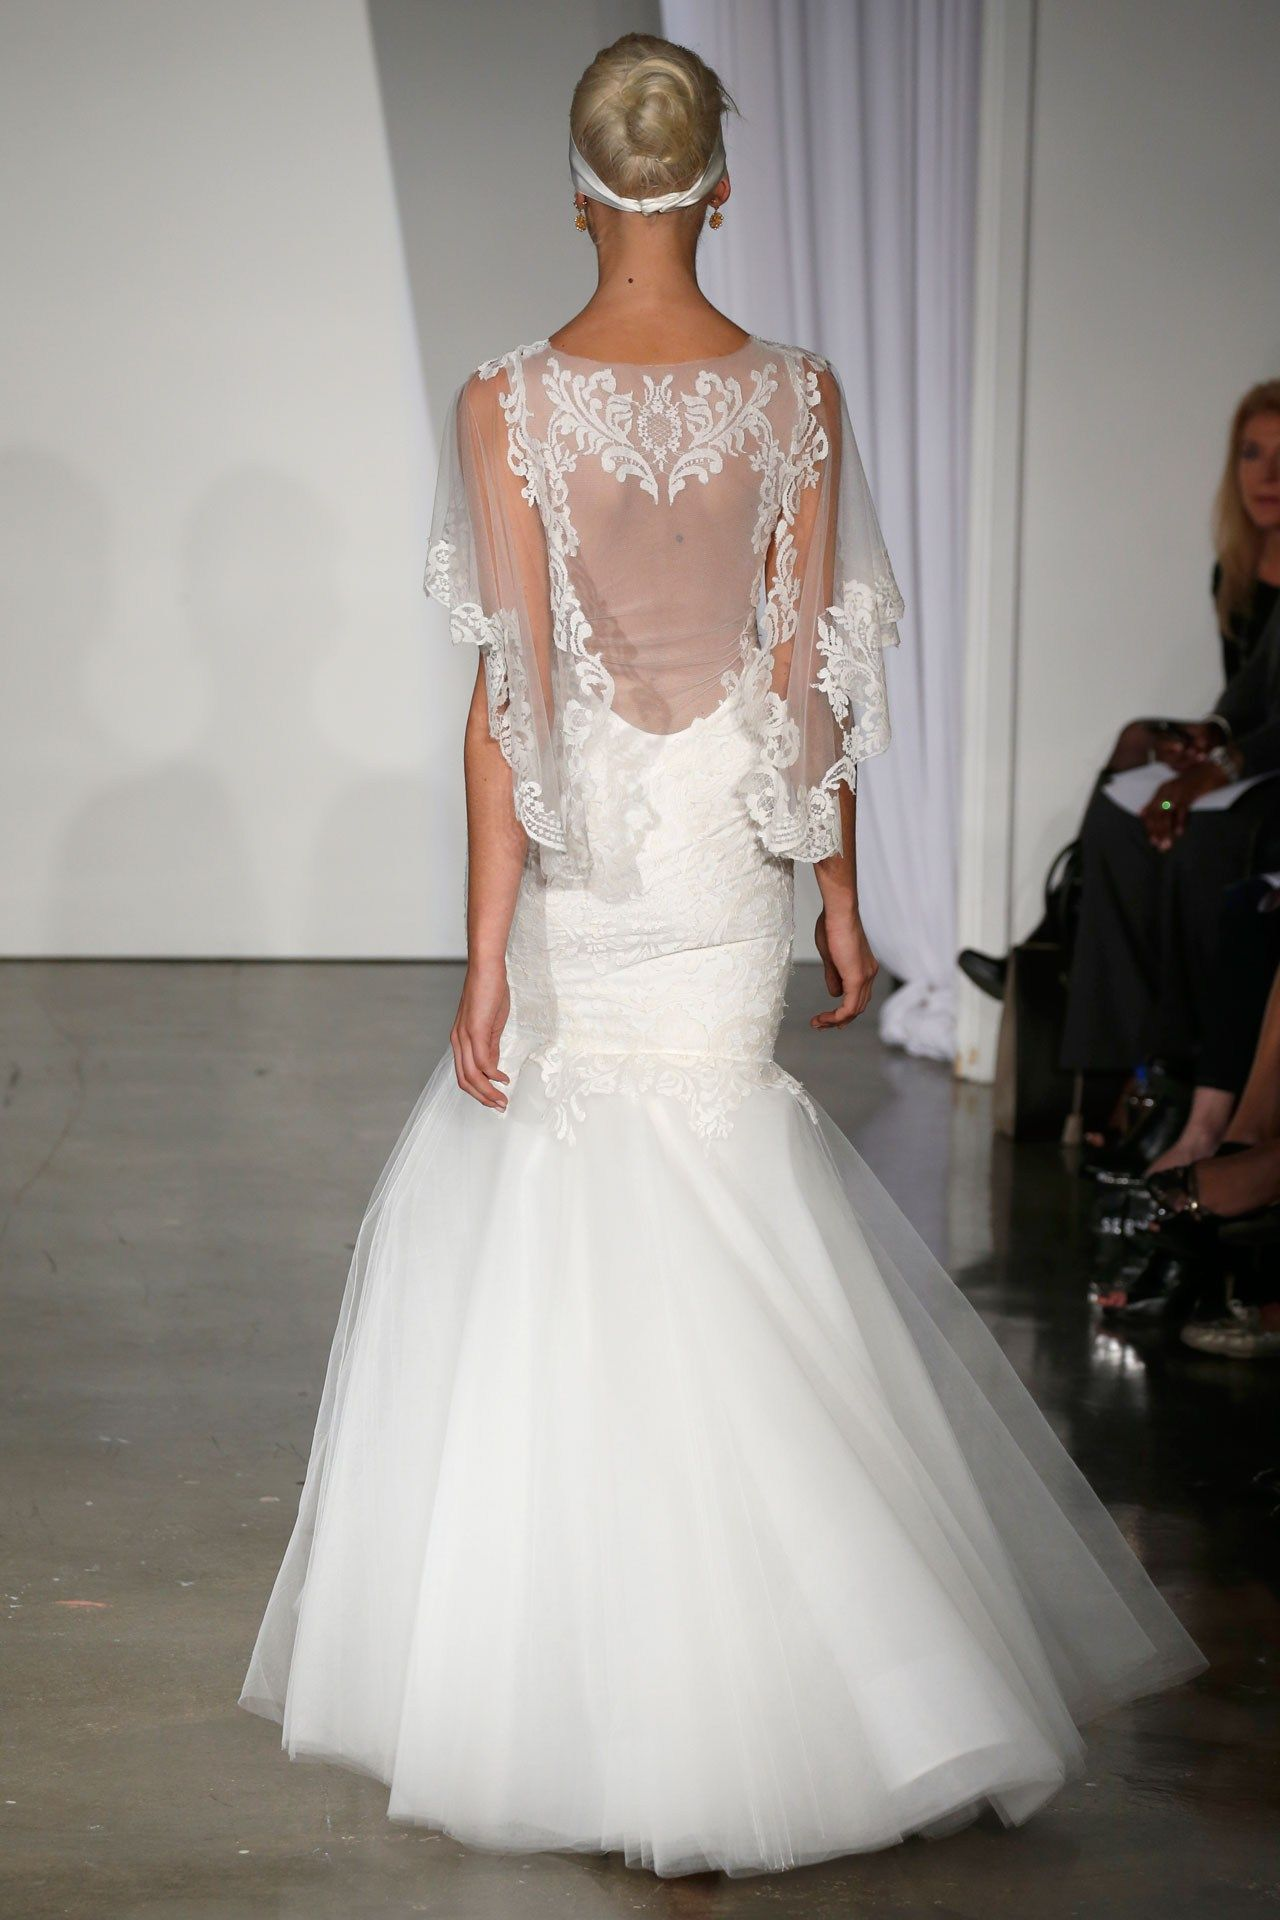 Priscilla of boston wedding dresses  Wedding Dresses  The Ultimate Gallery BridesMagazine